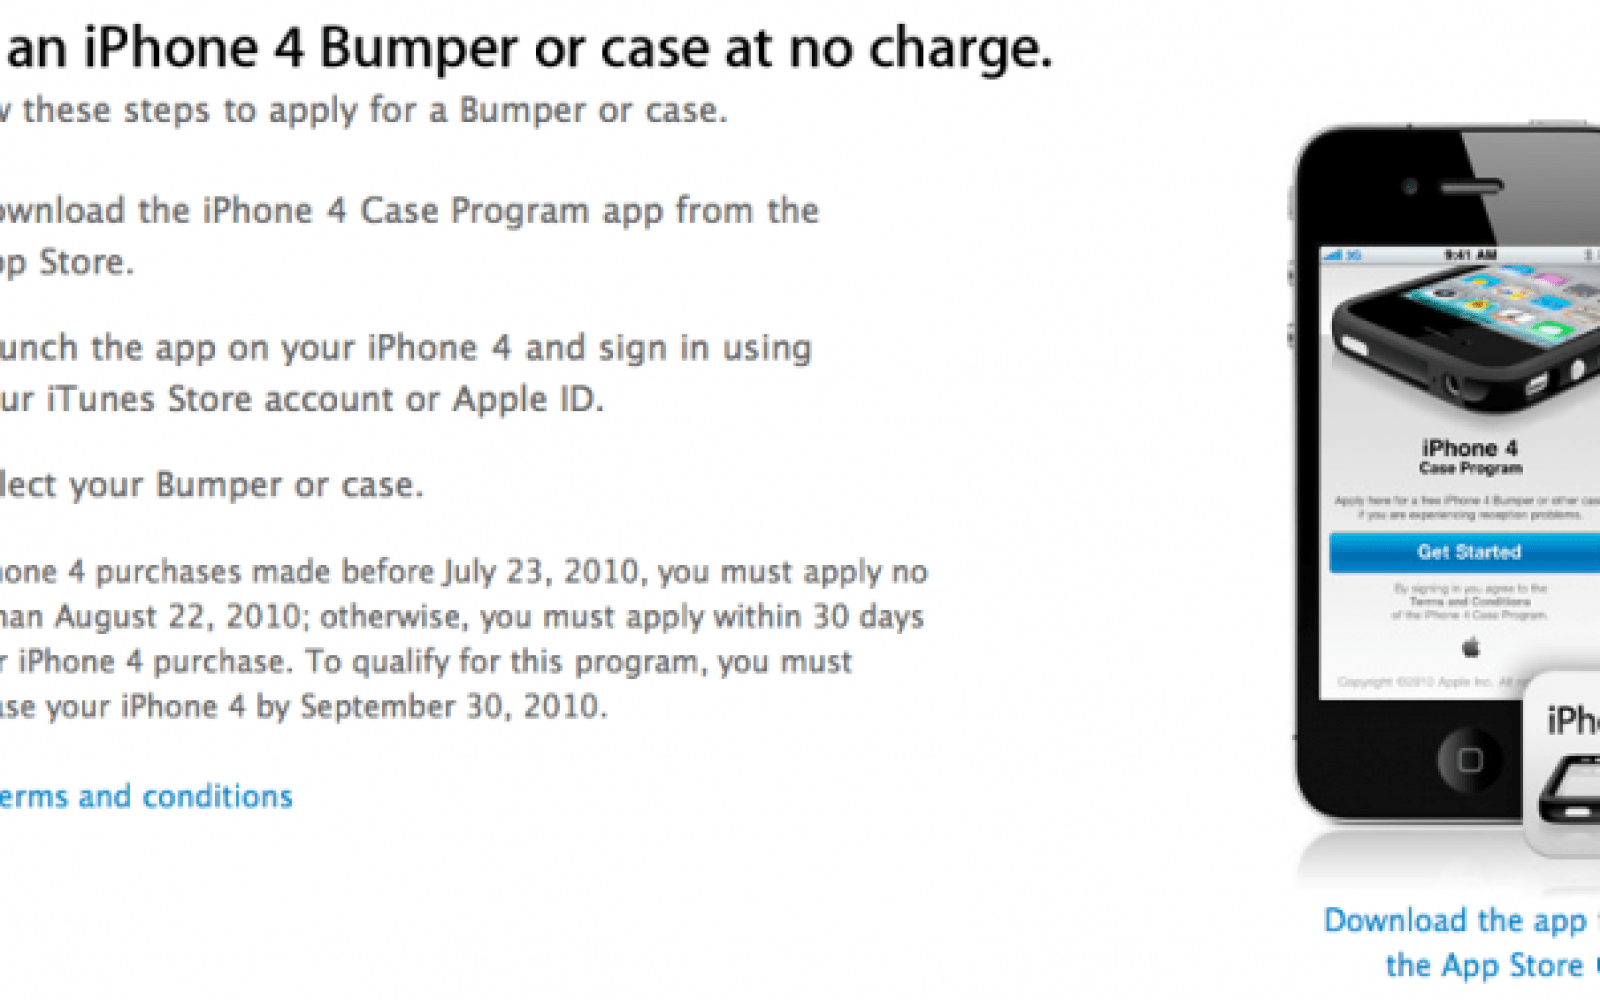 Apple iPhone 4 free bumper plan comes via app - 9to5Mac